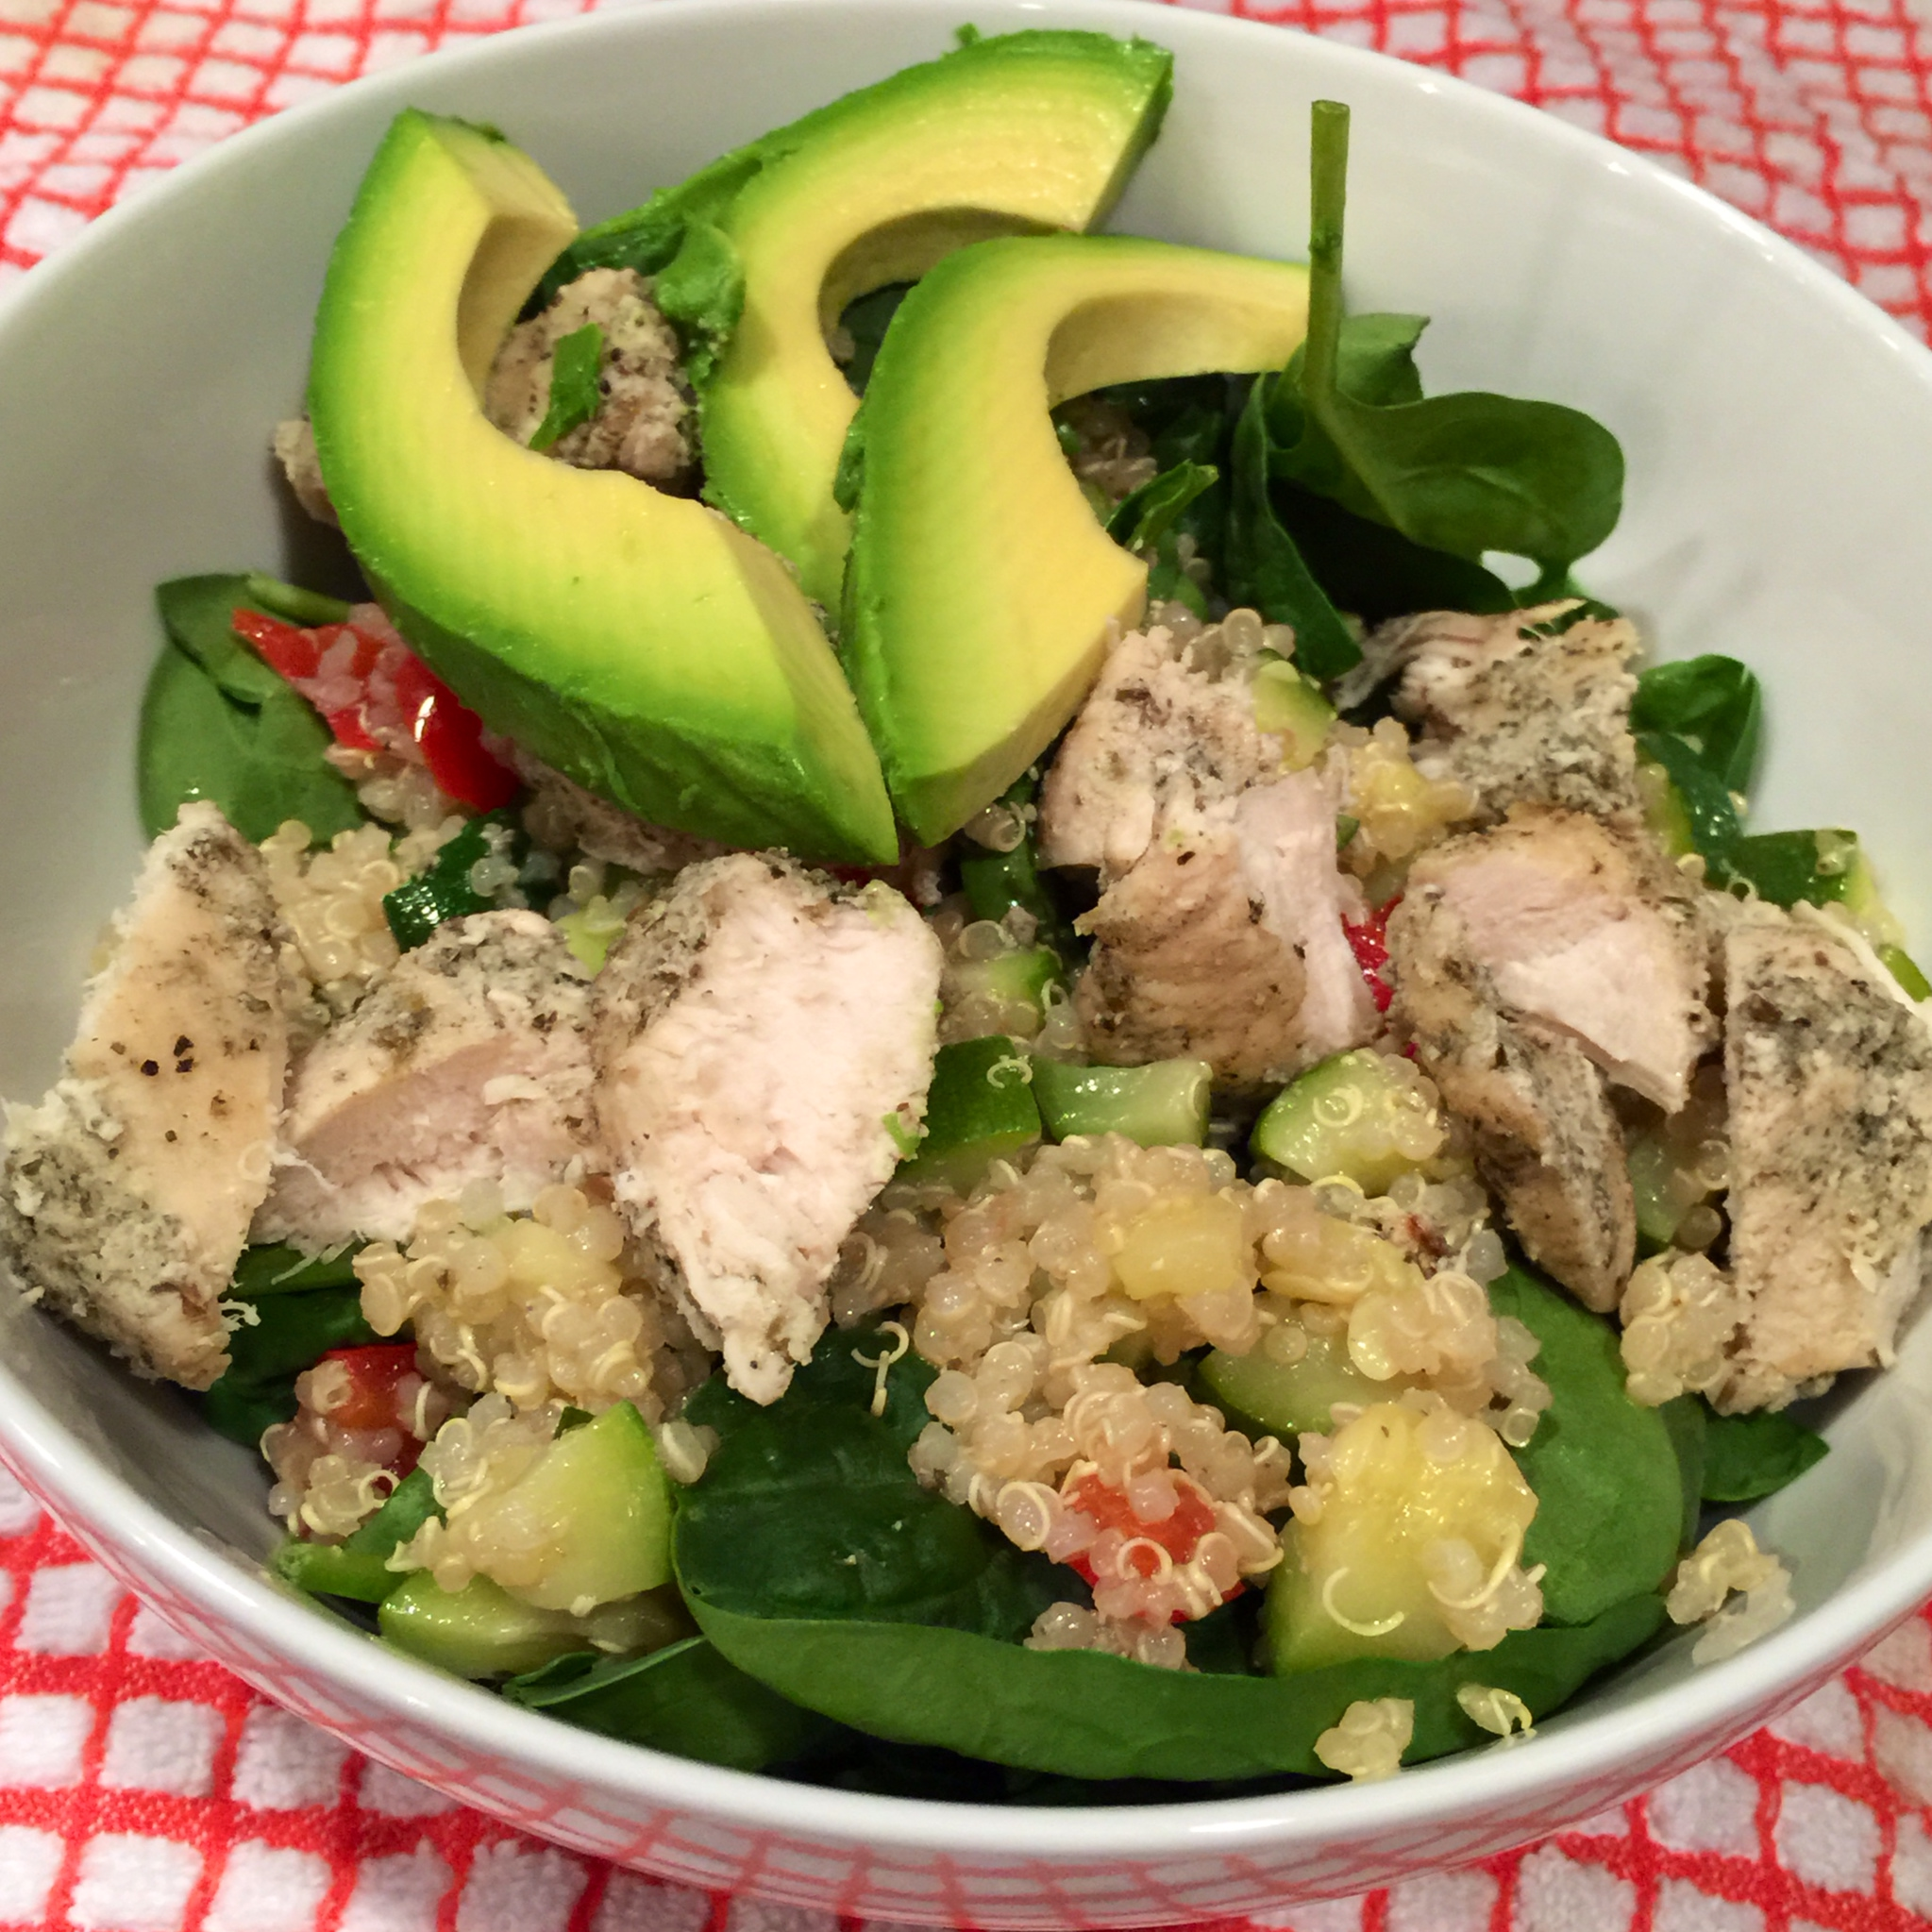 Quinoa Spinach Chicken Rosemary Chicken Quinoa And Spinach Bowl Side View